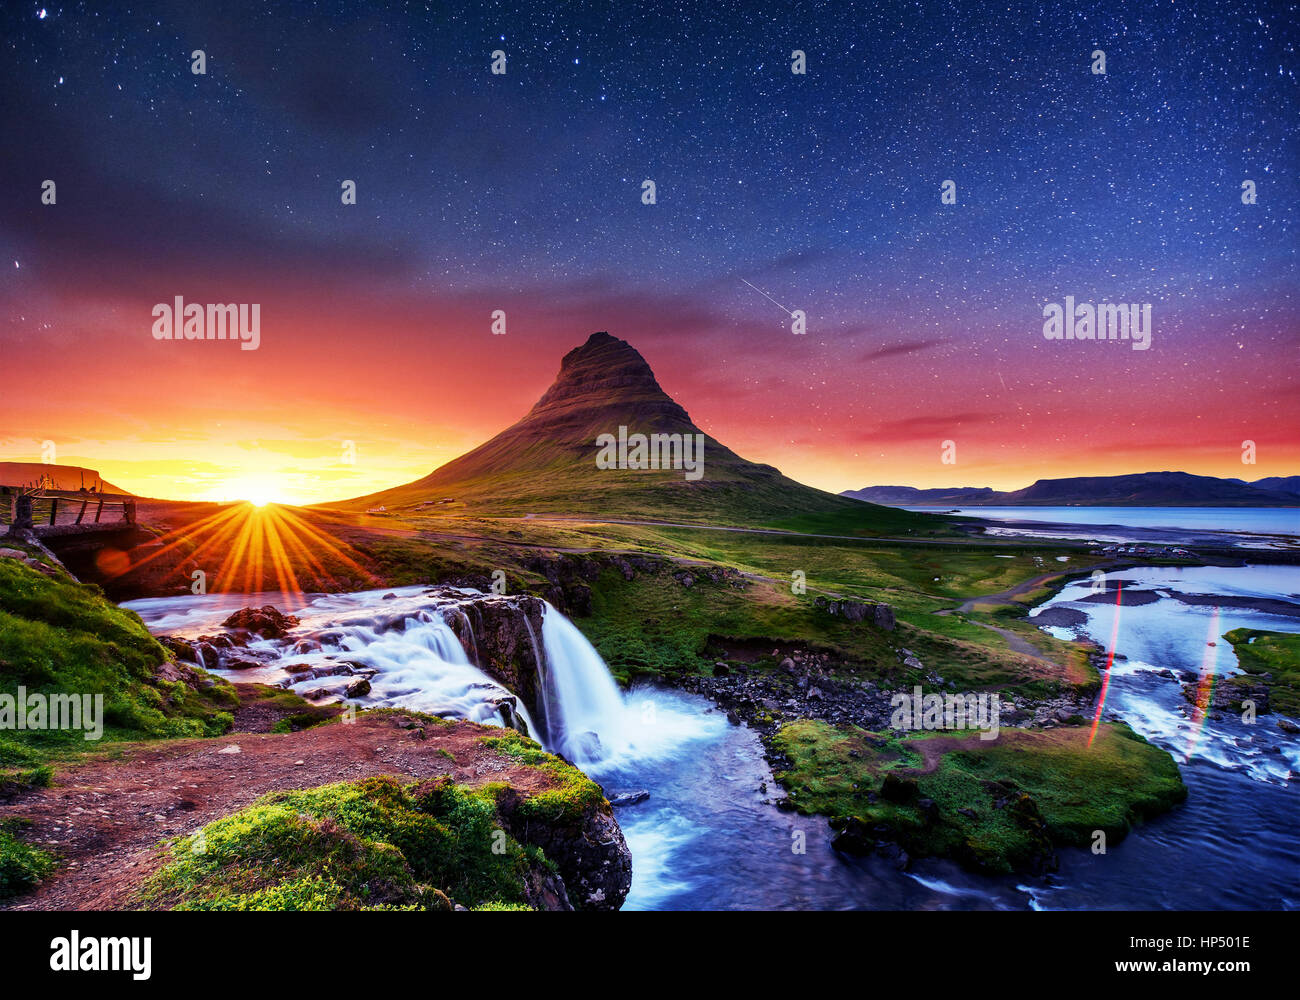 Fantastic views the landscape of Iceland - Stock Image